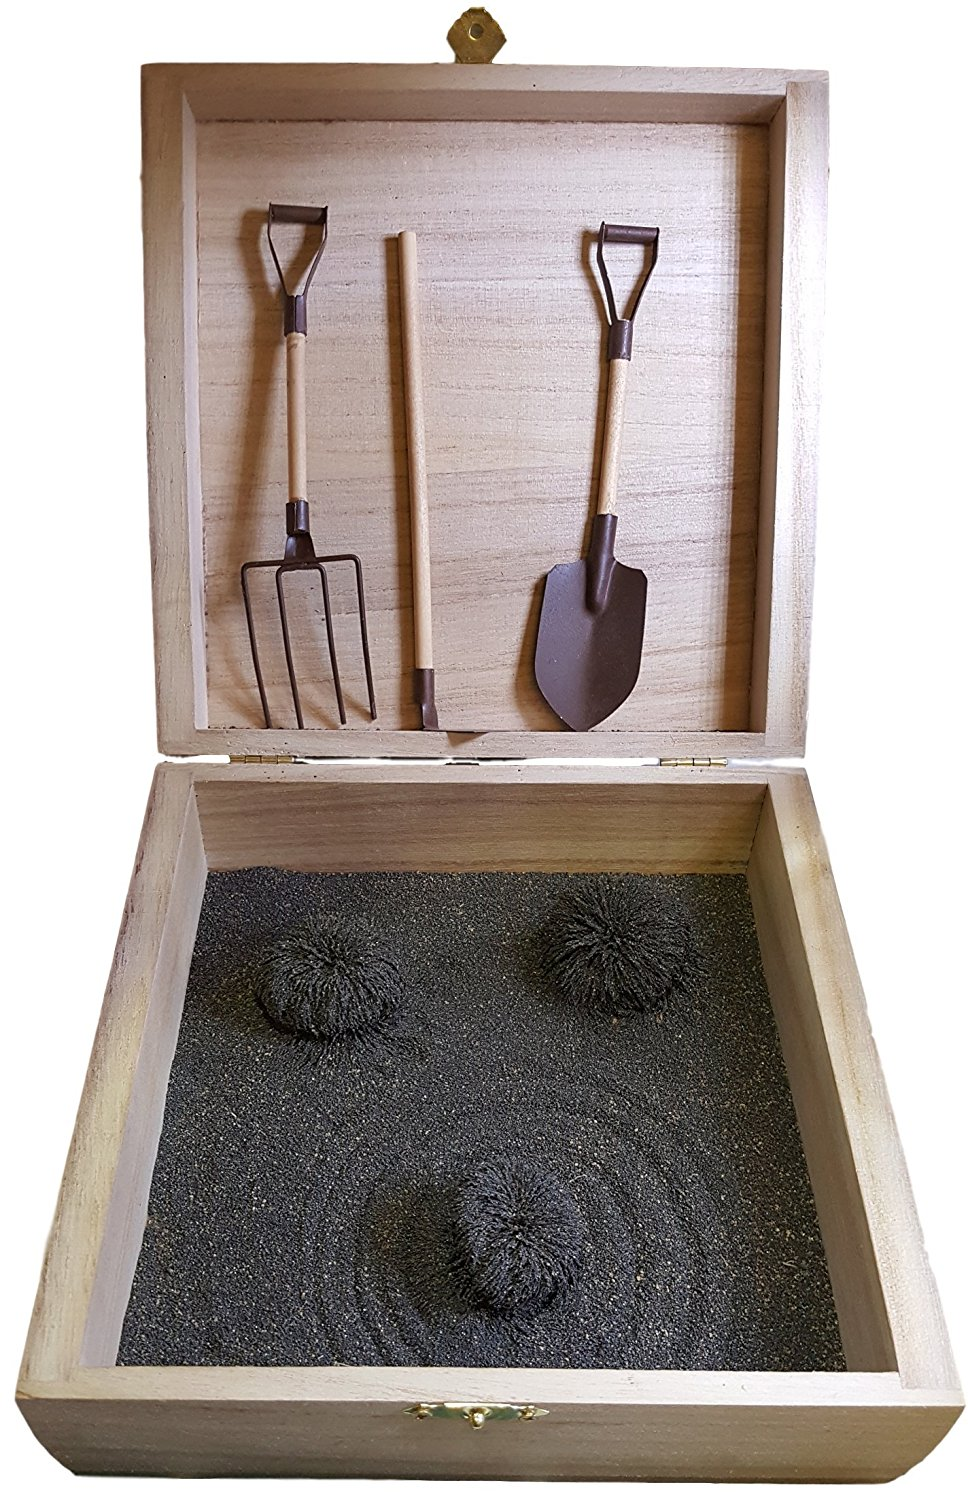 Zen Garden Box With Tools That Has Magnetic Sand